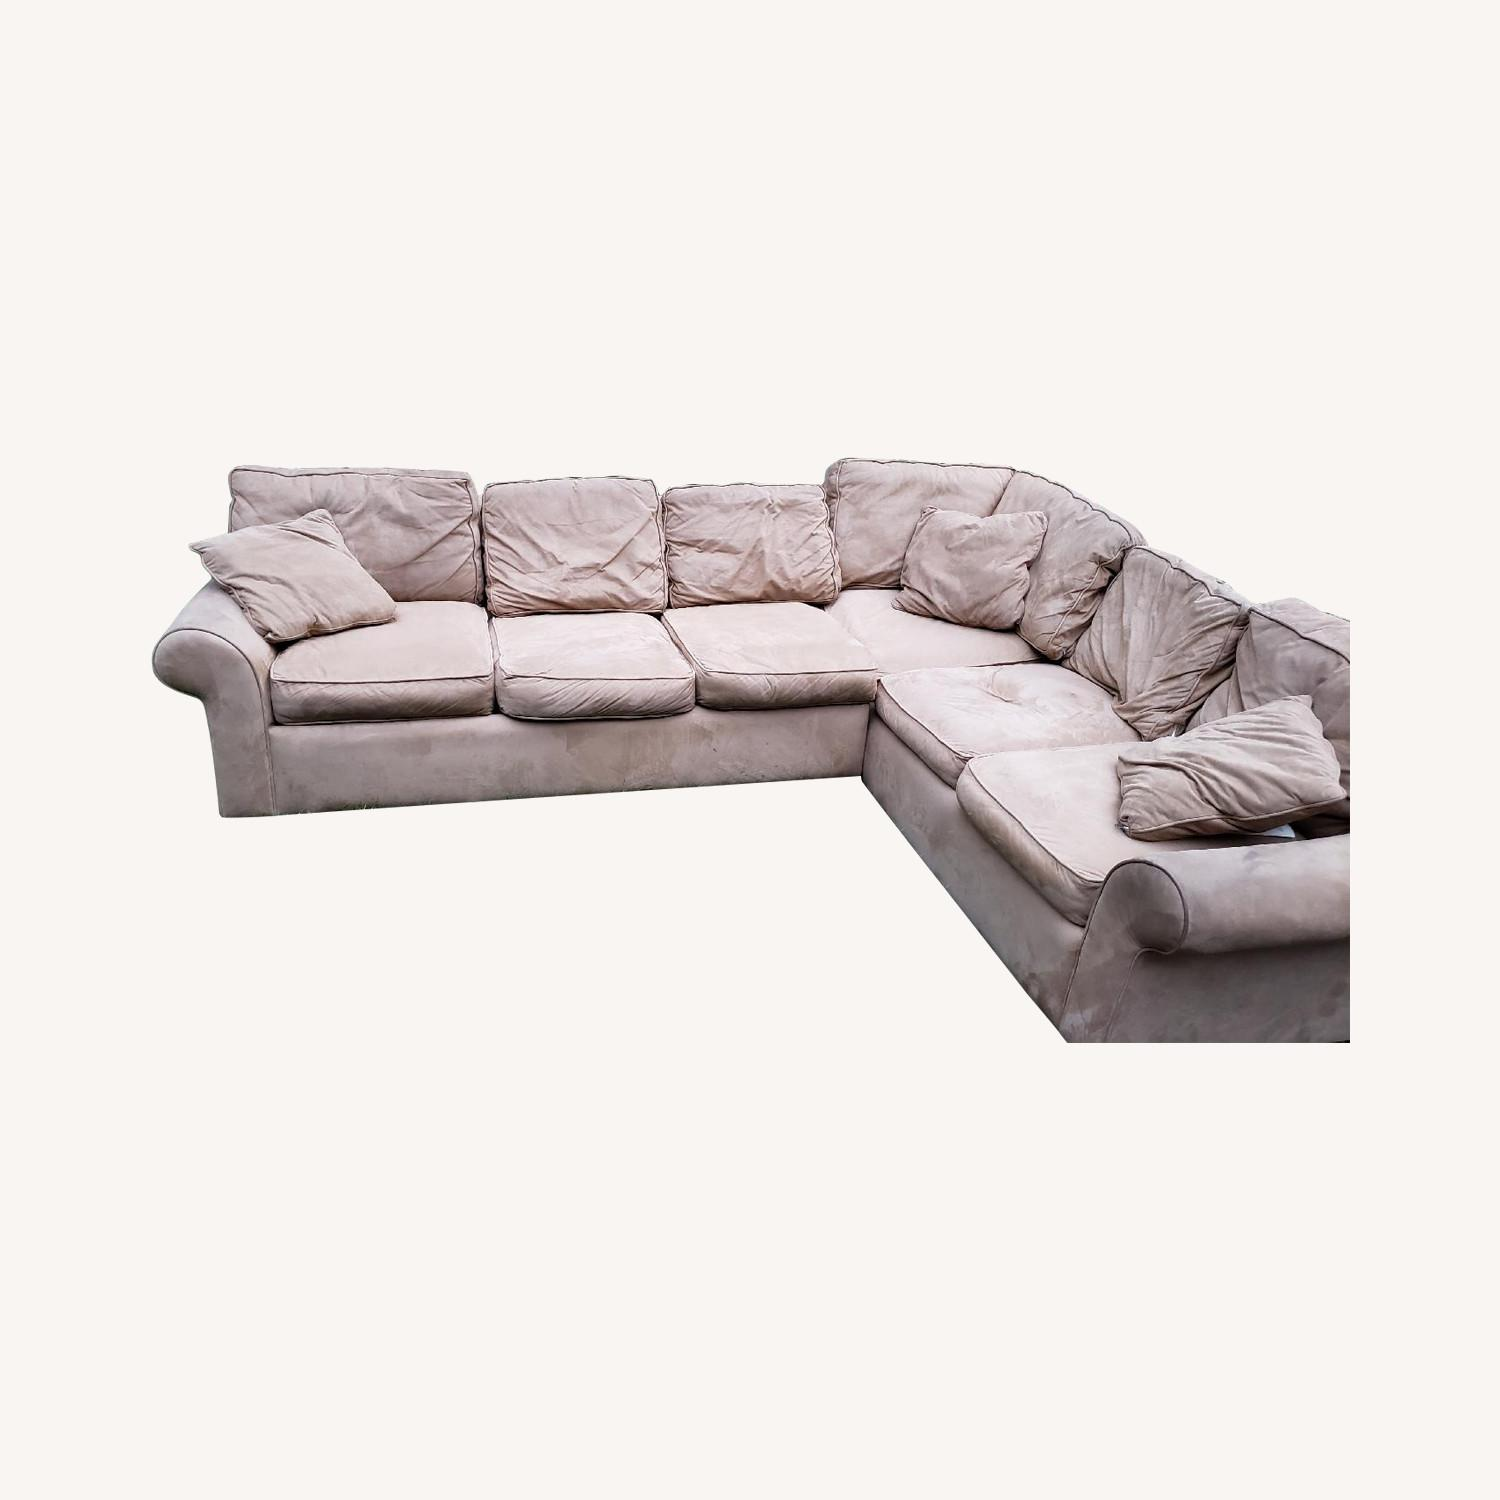 Beige Suede 2-Piece Sectional Sofa - image-0